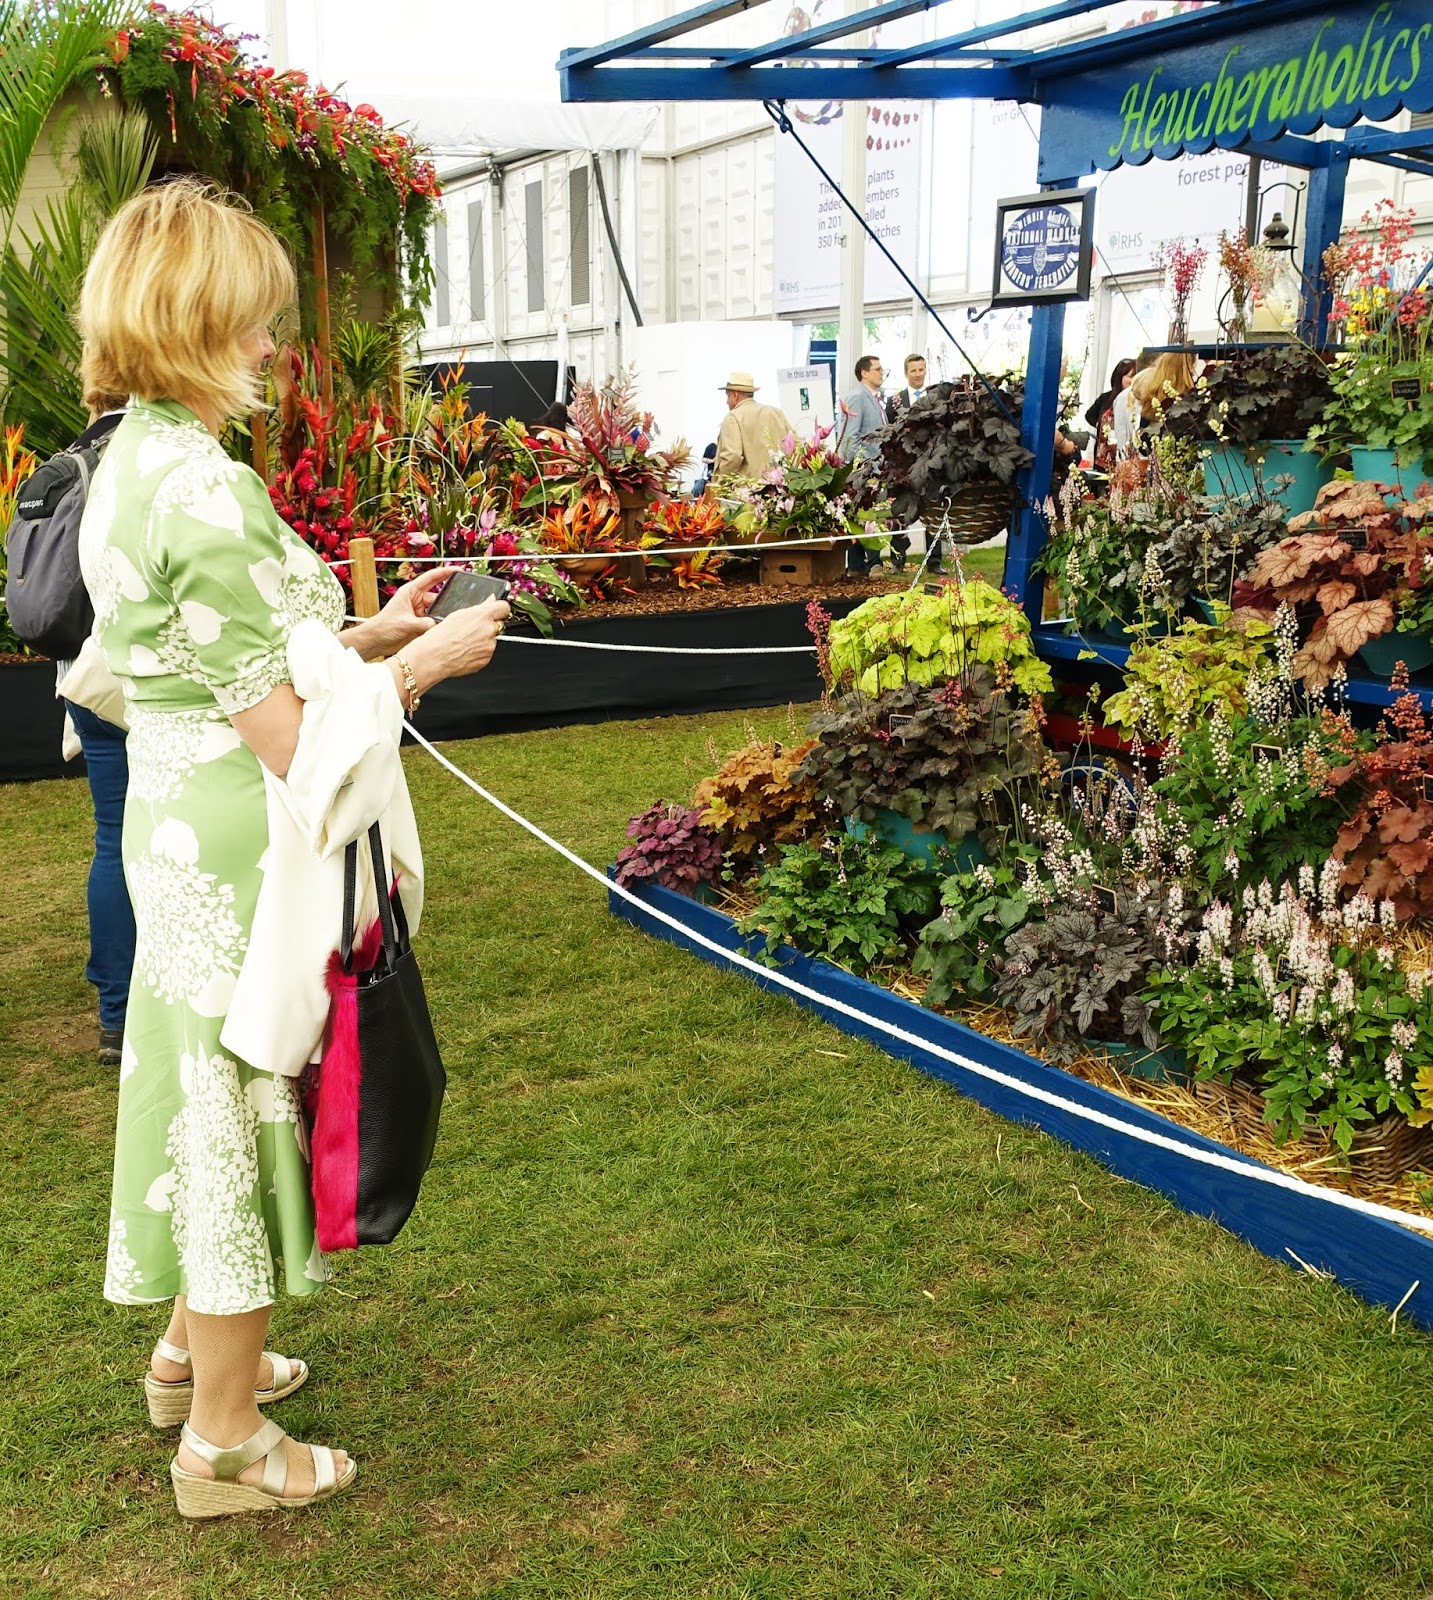 Floral Dress At The Chelsea Flower Show Is This Mutton